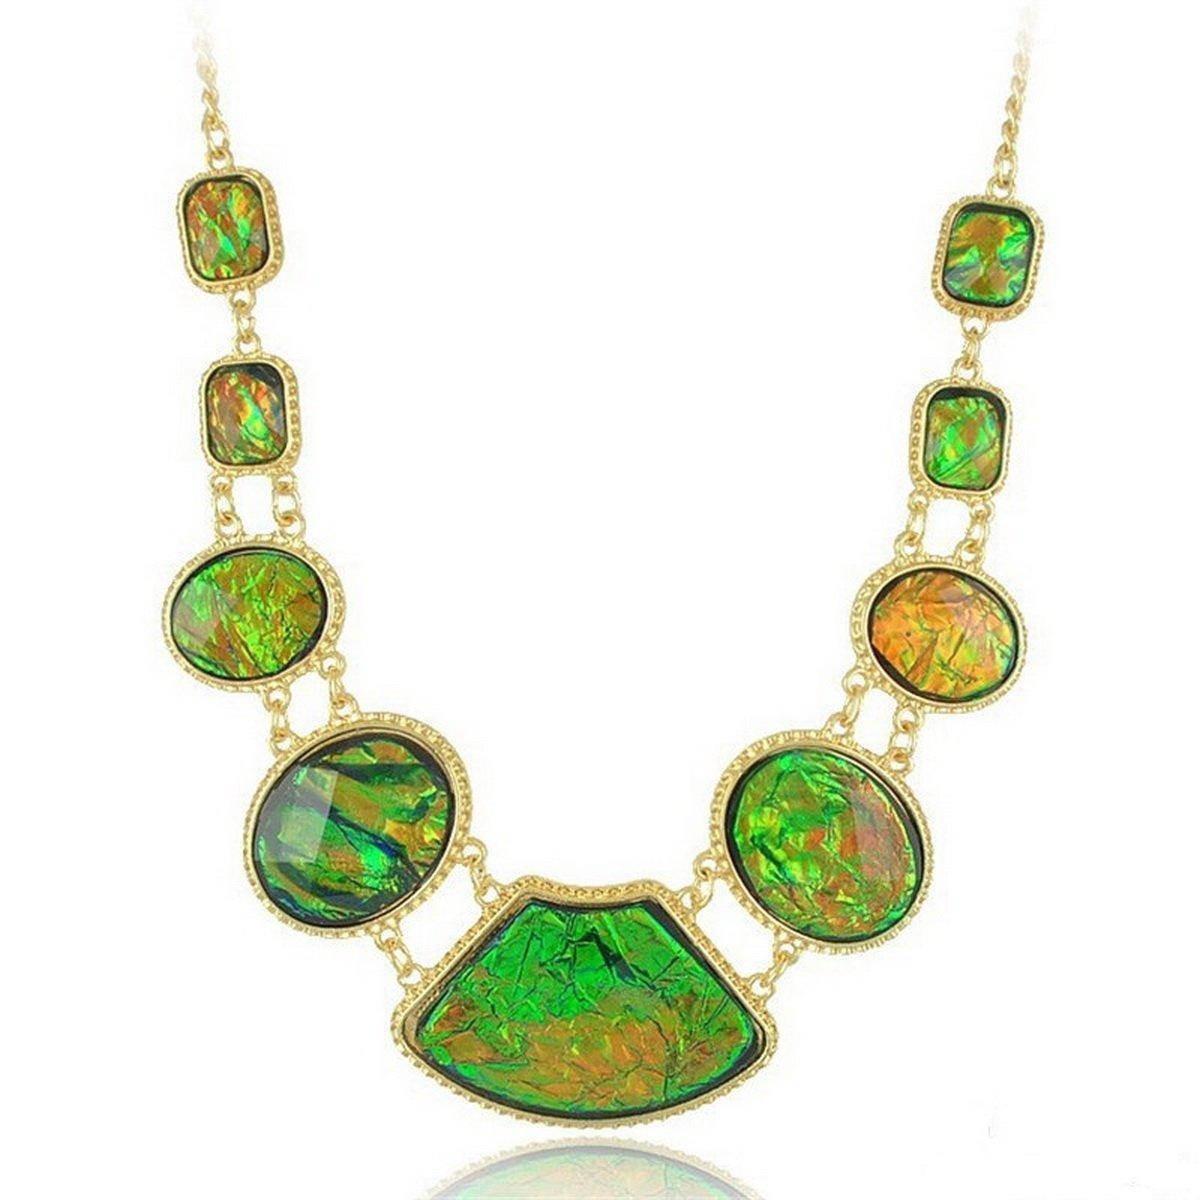 ARICO African Resin Jewelry Set Gold Plated Statement Neckklace and Earrings Parure Bijoux Femme Sapphire Jewelry Square Jewelry Sets NE881